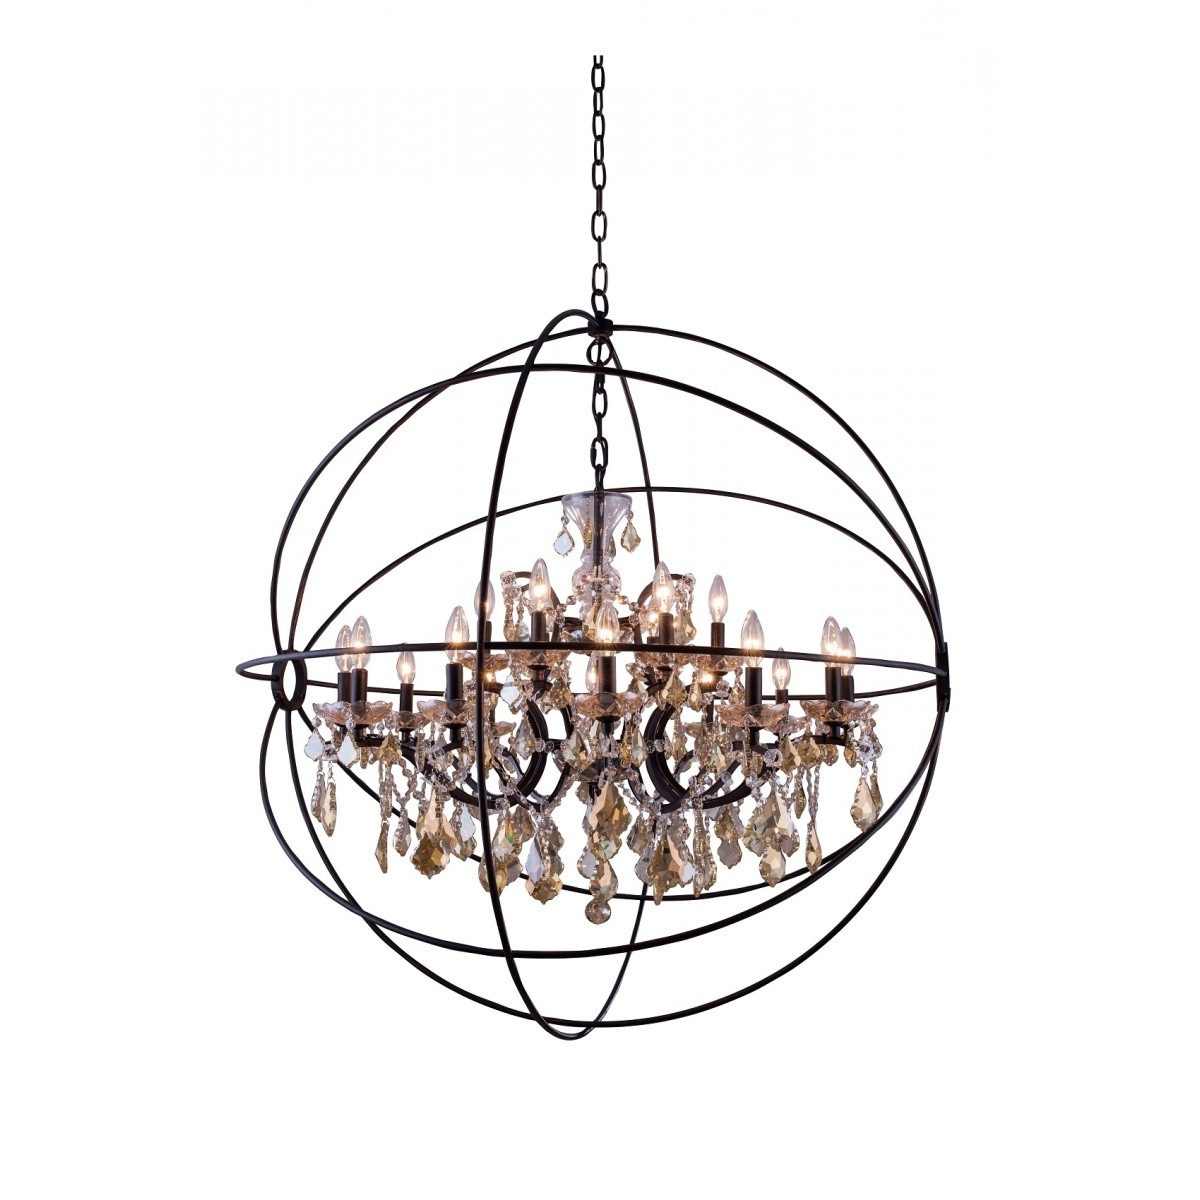 Large Globe Chandelier In Most Popular Lighting: Large Bronze Iron Crystal Orb Chandelier With 15 Light For (View 8 of 15)